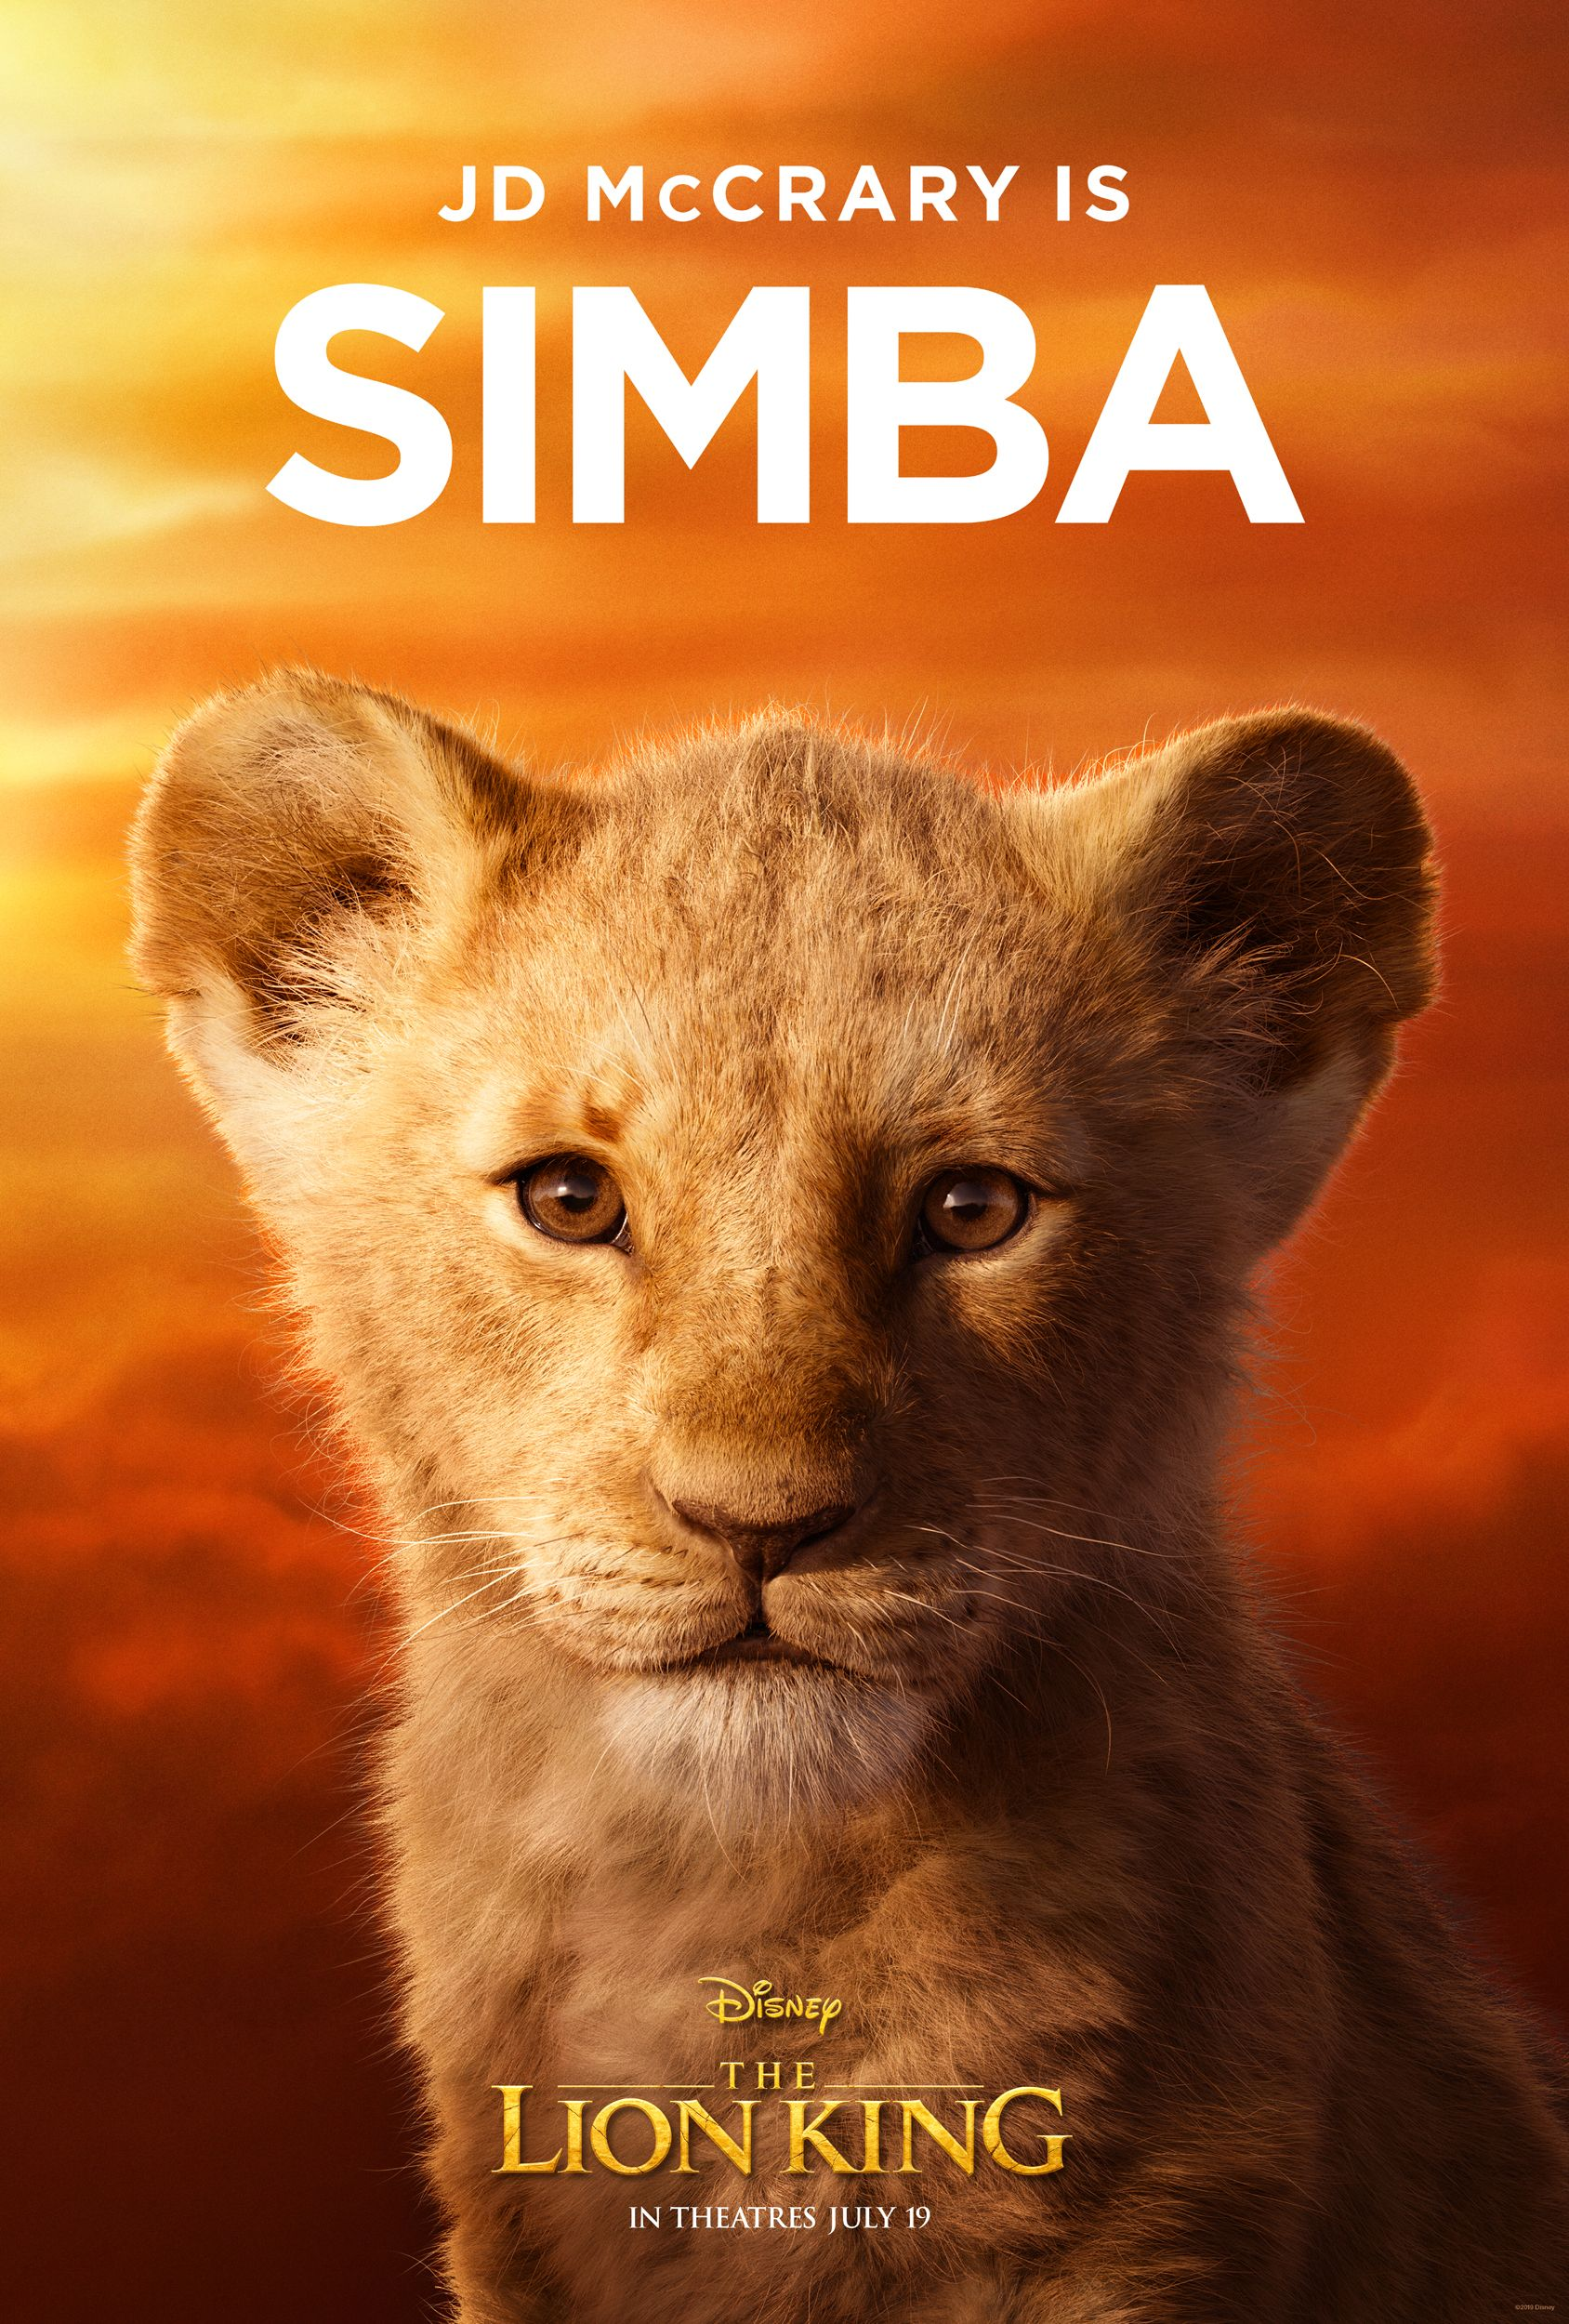 The Lion King Character Posters Reveal The Full Cast Collider